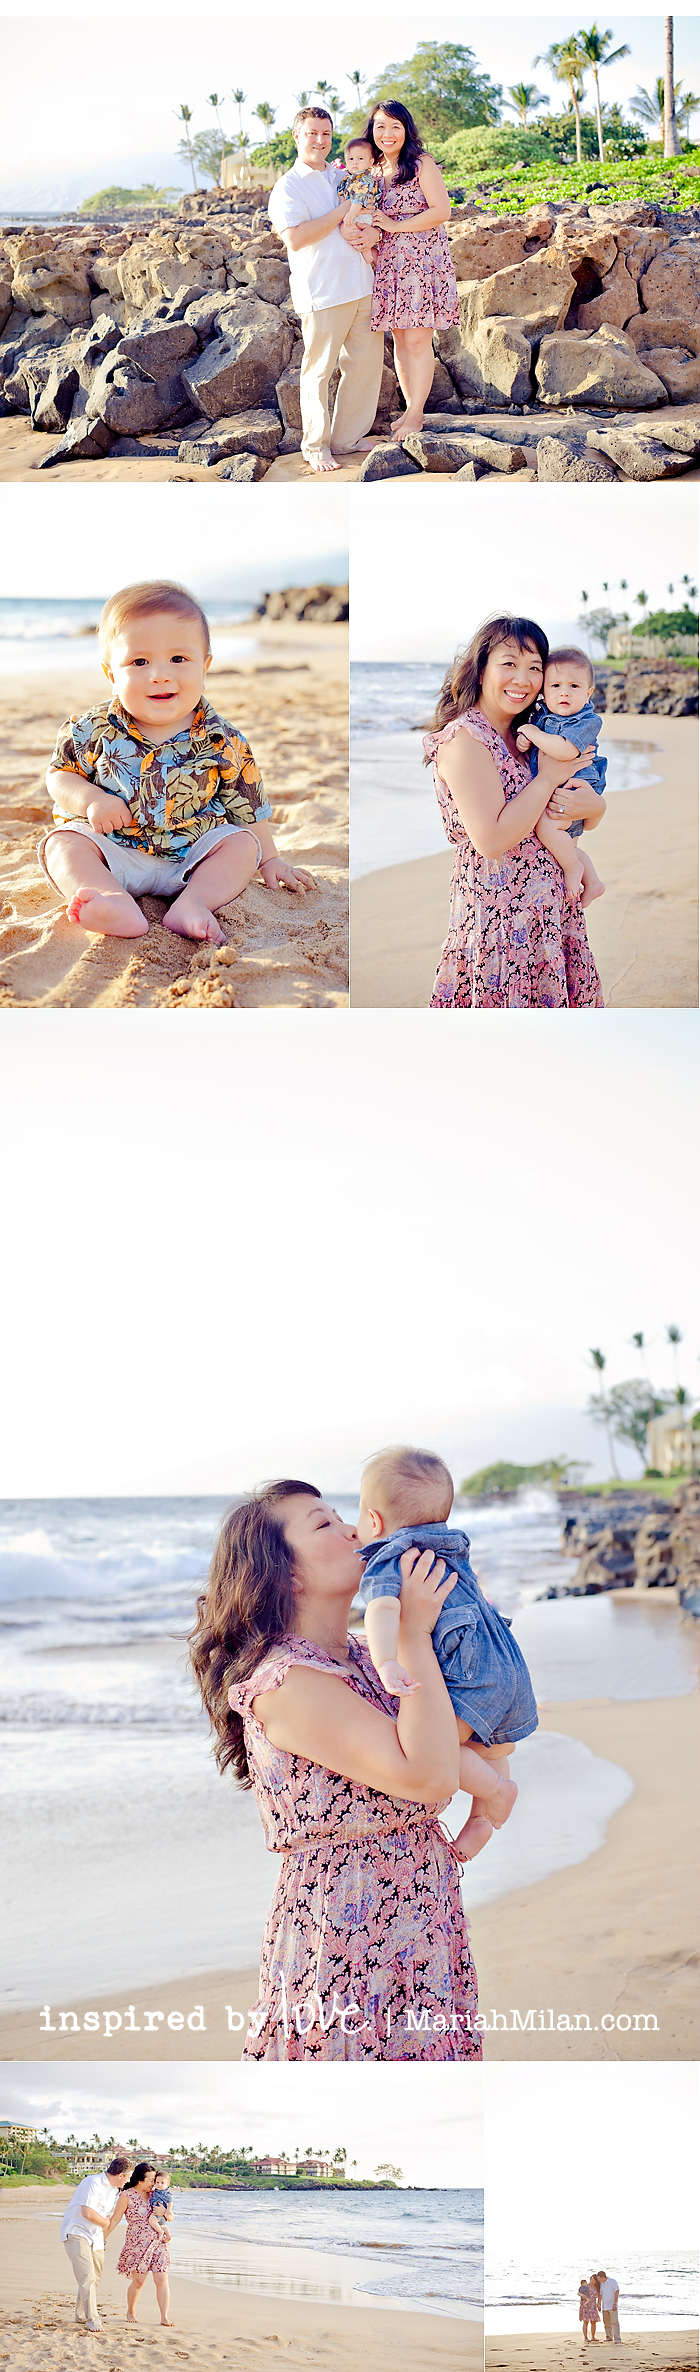 Maui Beach Photographer